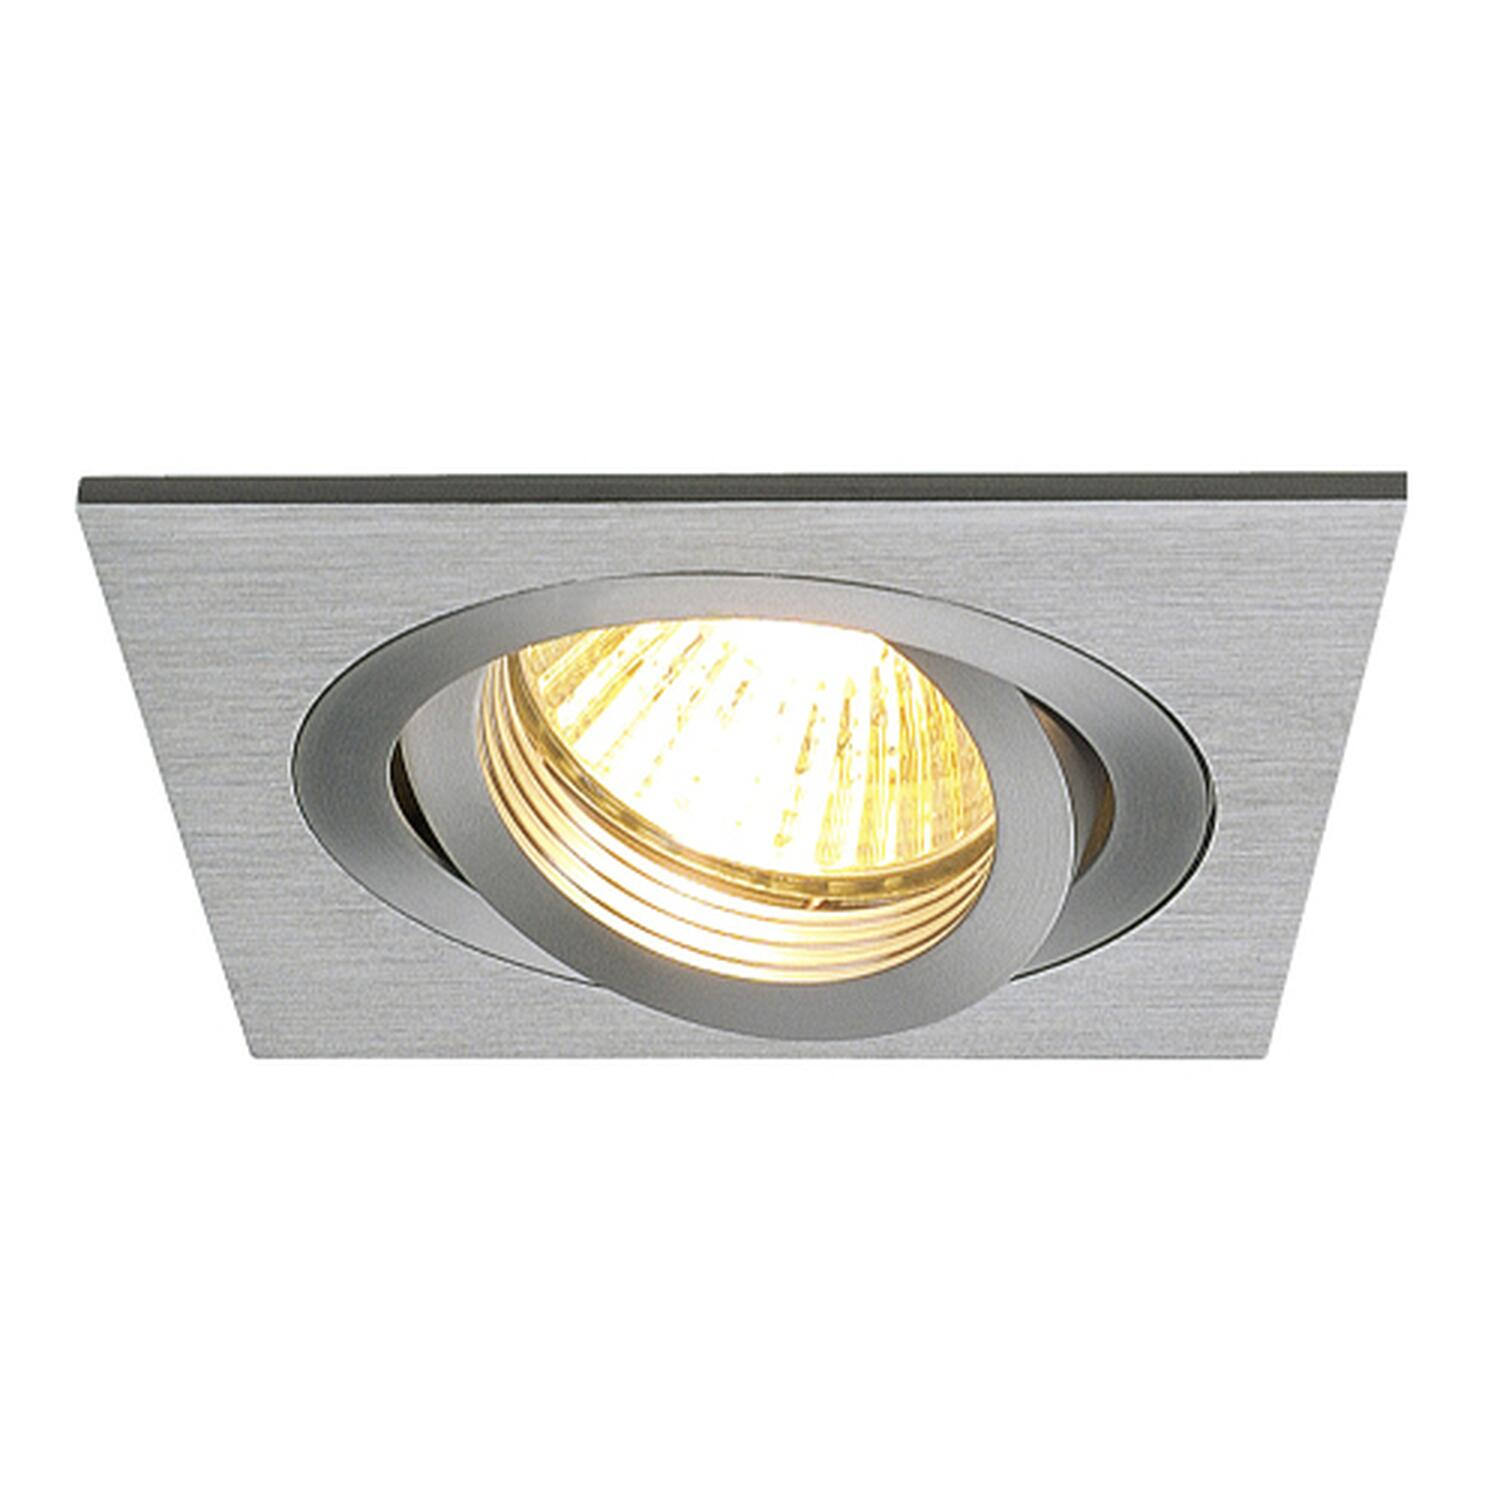 NEW TRIA I GU10 Downlight, eckig, alu brushed, max. 50W, inkl. Clipfedern